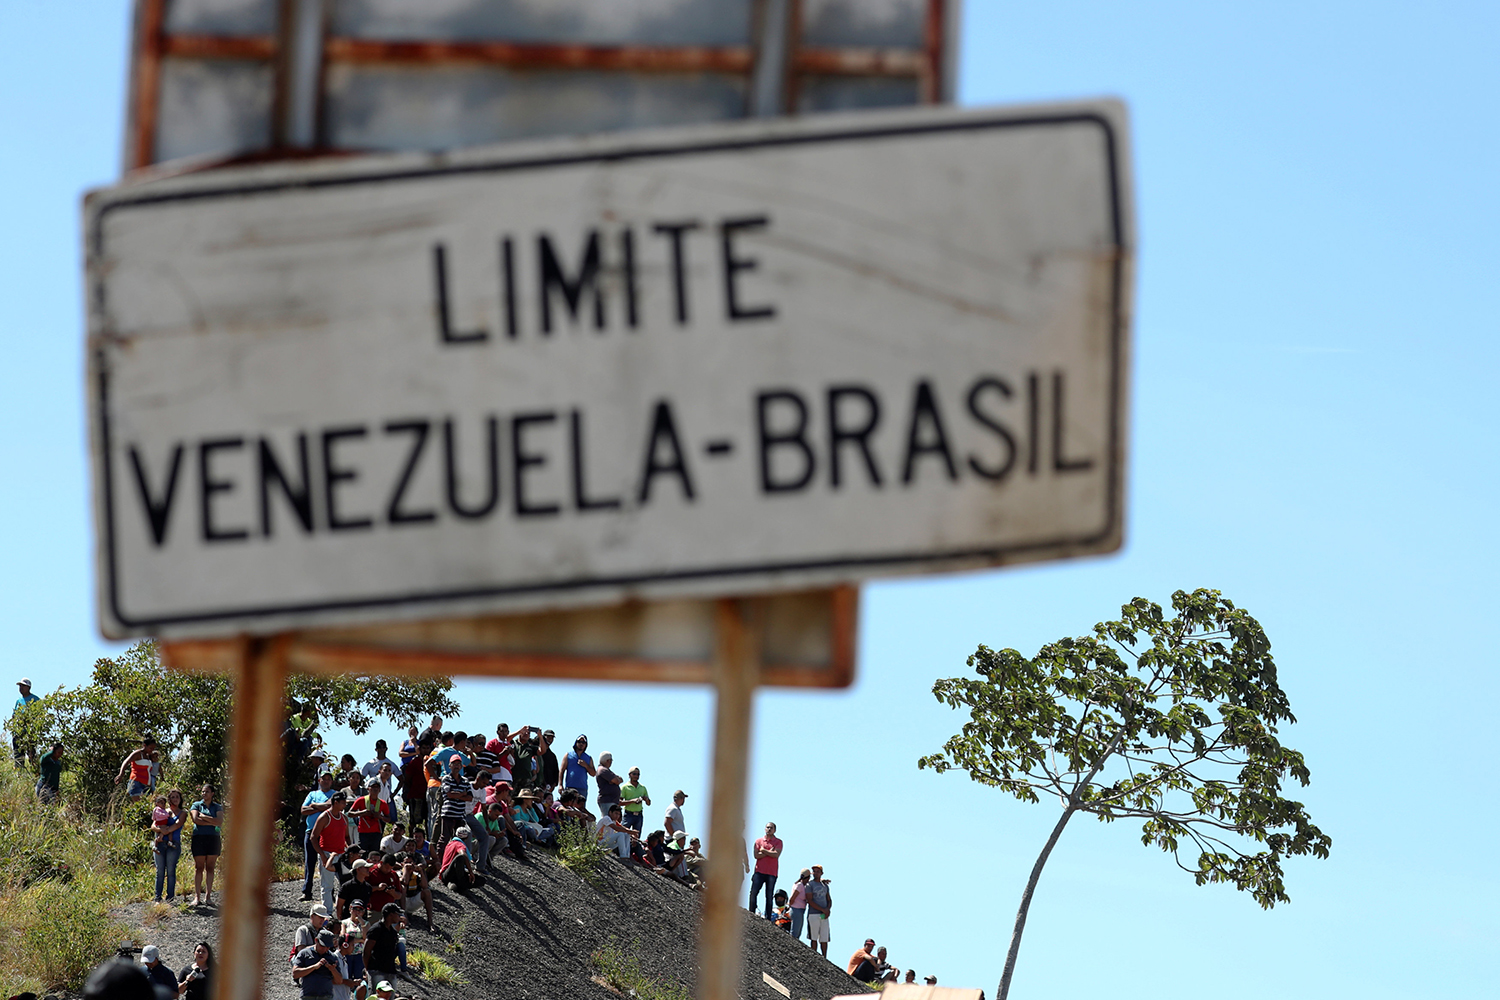 People gather at the border between Venezuela and Brazil in Pacaraima, Roraima state, Brazil February 23, 2019.  REUTERS/Ricardo Moraes